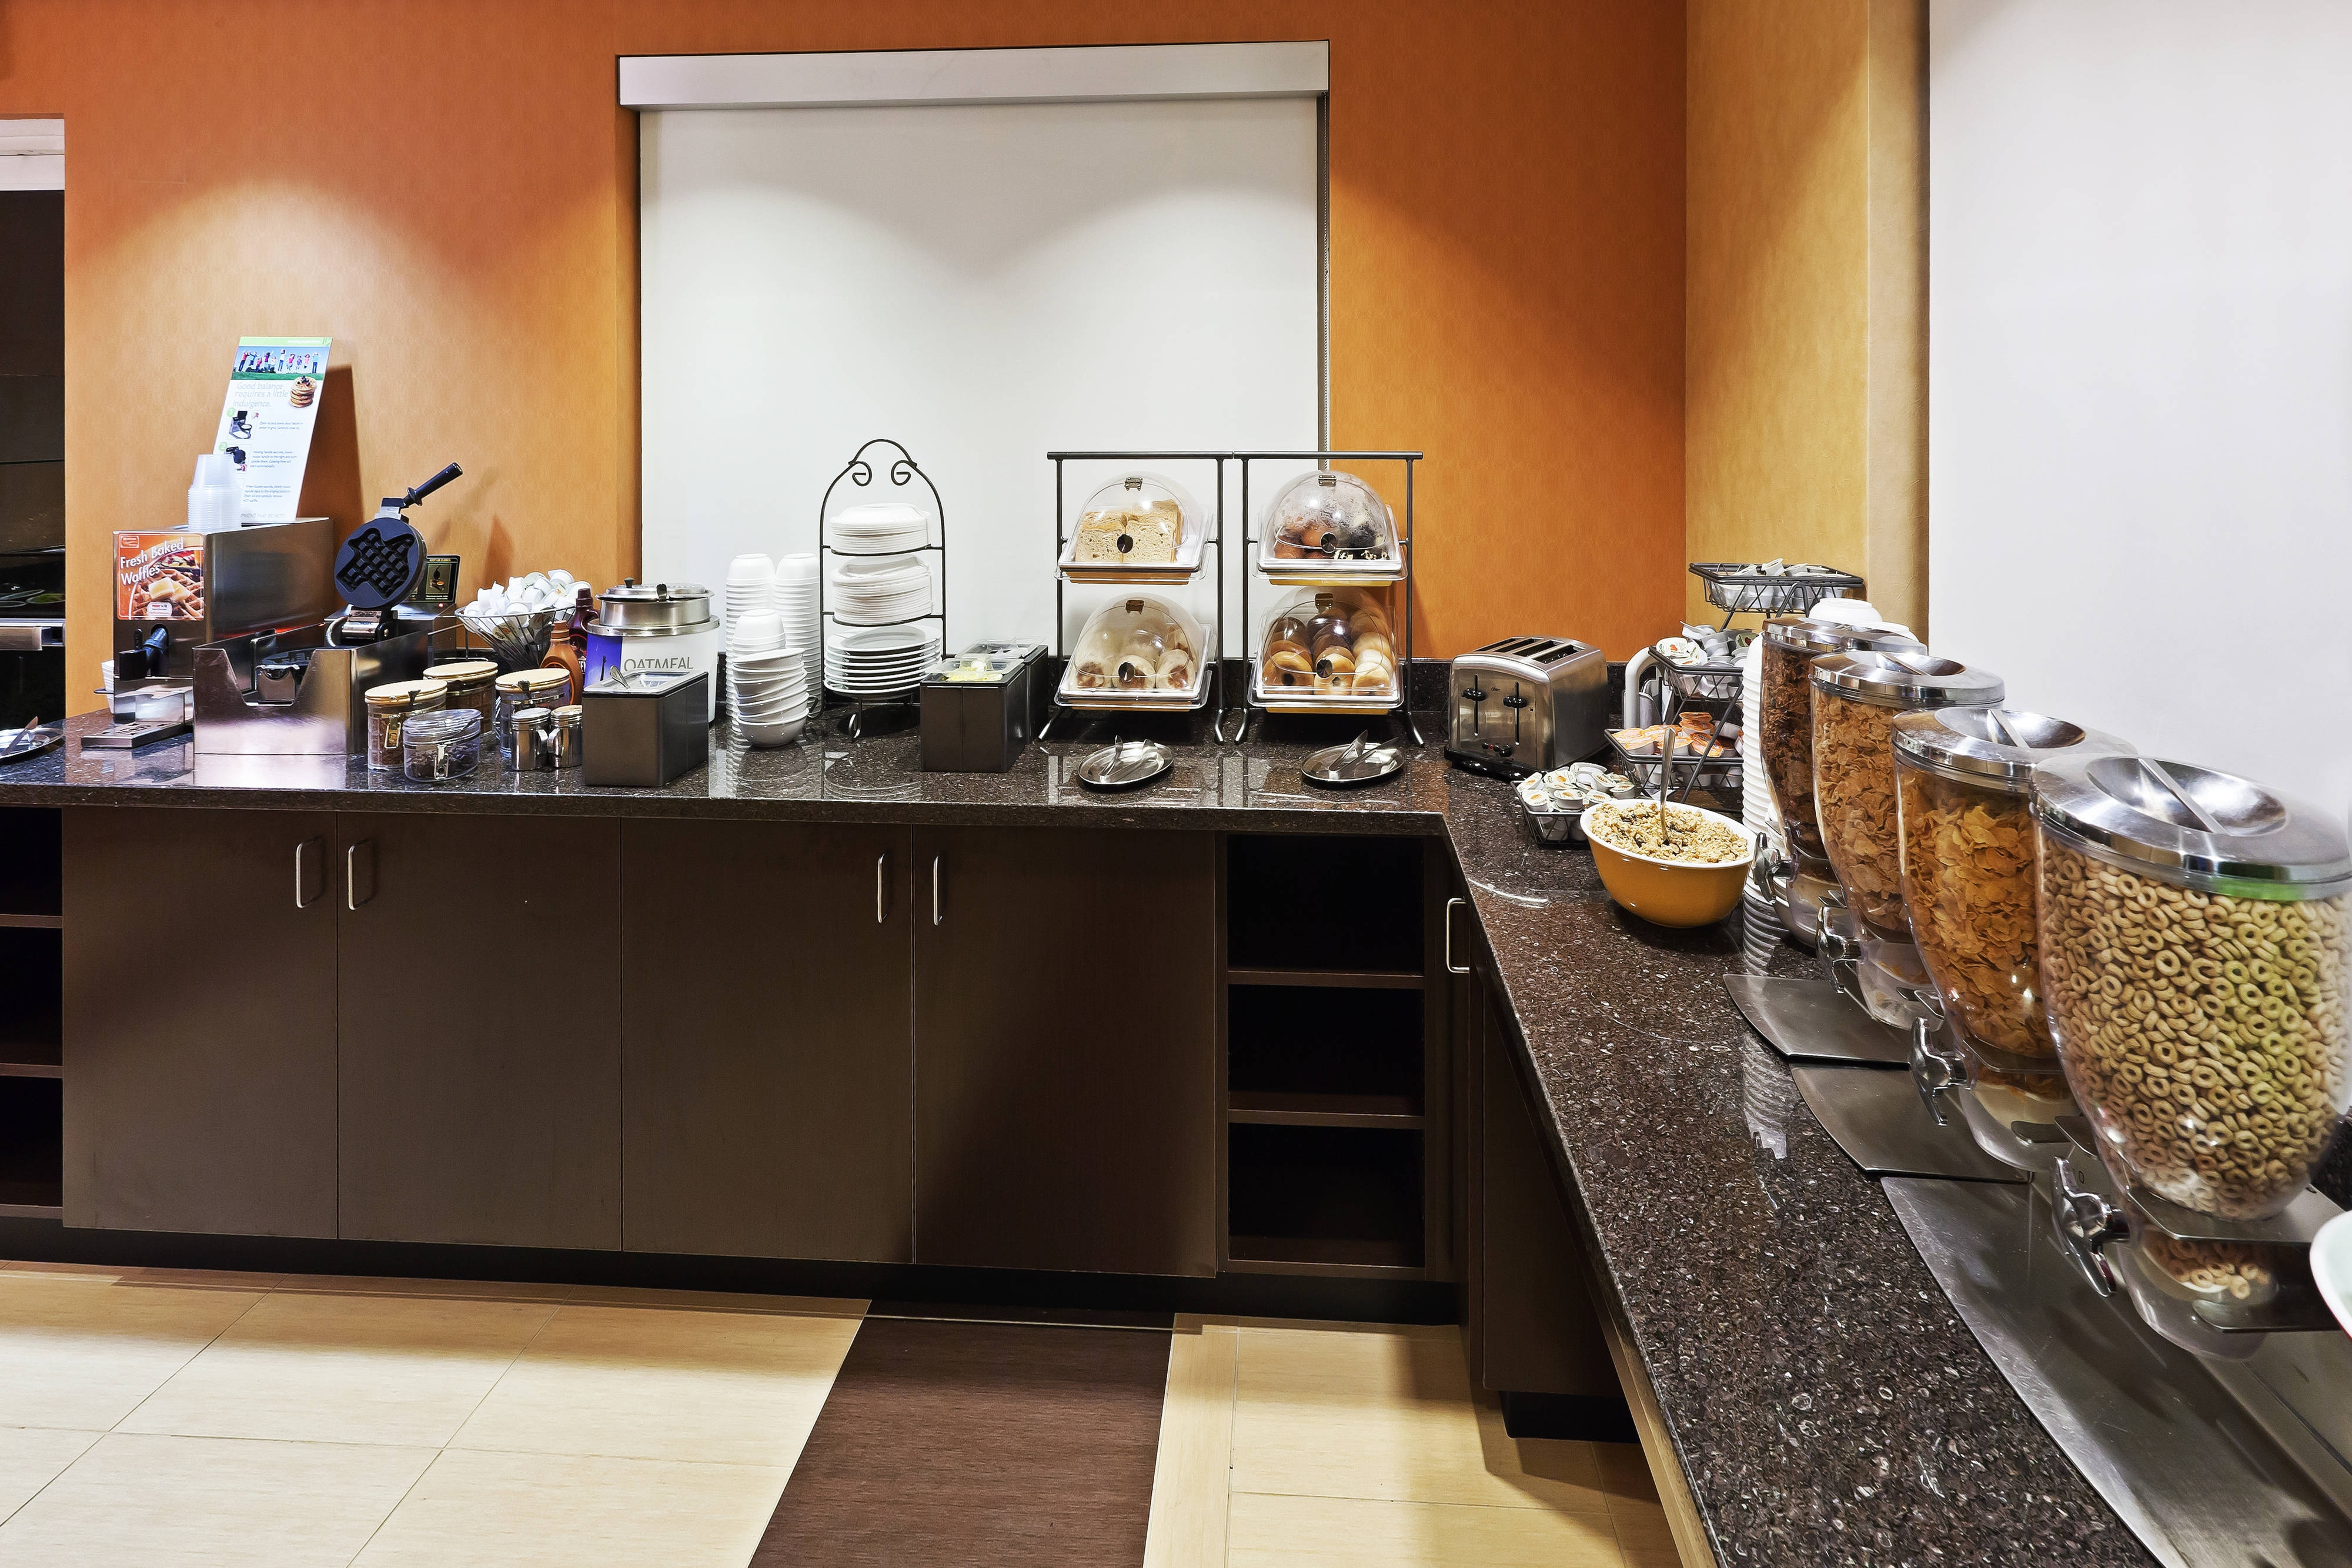 Residence Inn Breakfast Buffet